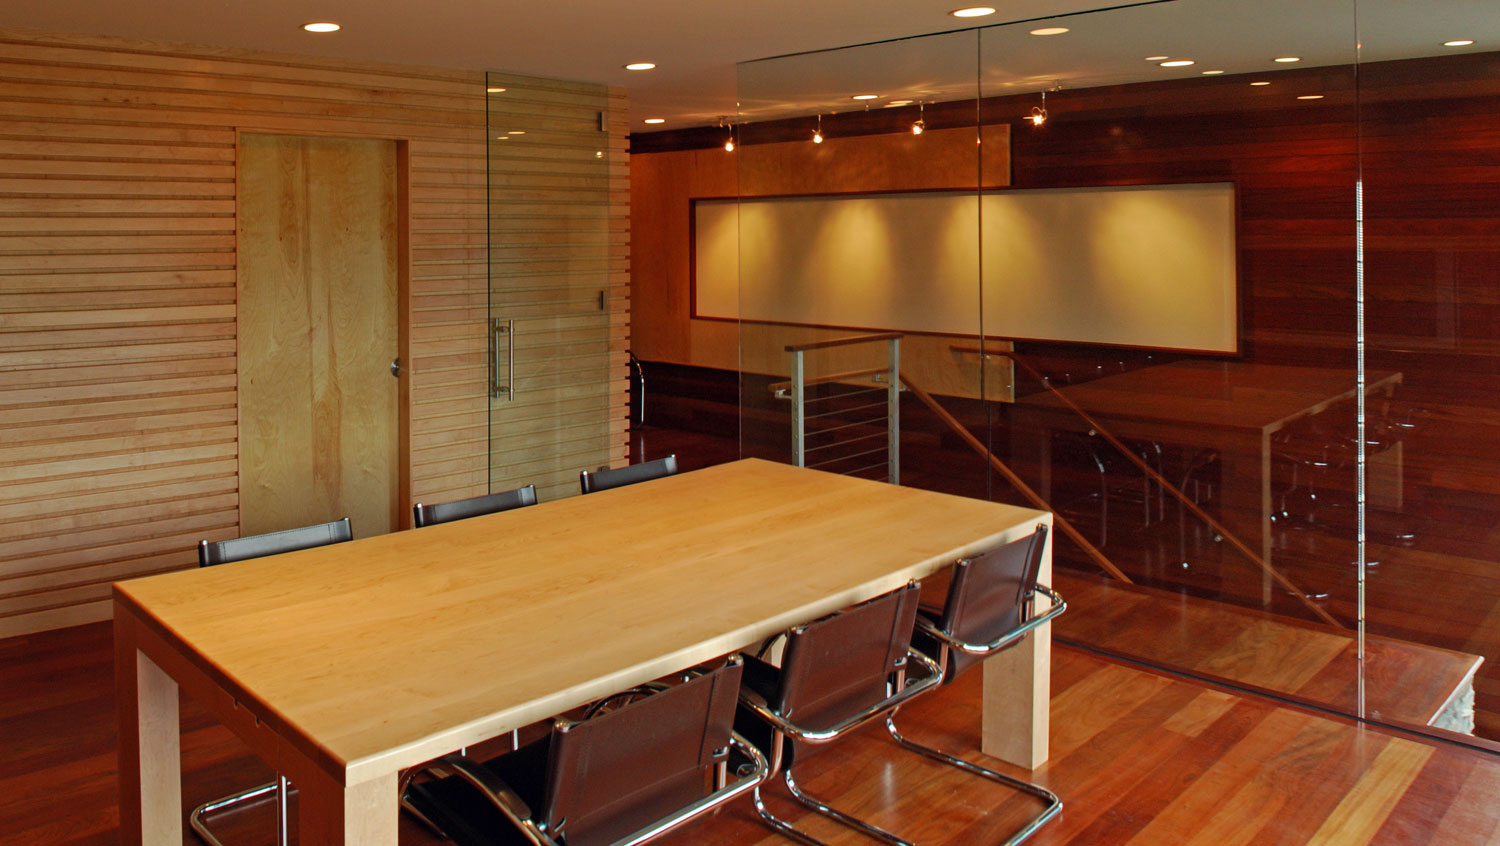 Pavelchak Architecture's conference room showcasing modern, clean design aesthetic with beautiful brazillian cherry and maple hardwoods.   Located in downtown Banner Elk, North Carolina near Boone. Custom conference table by Miter's Touch.